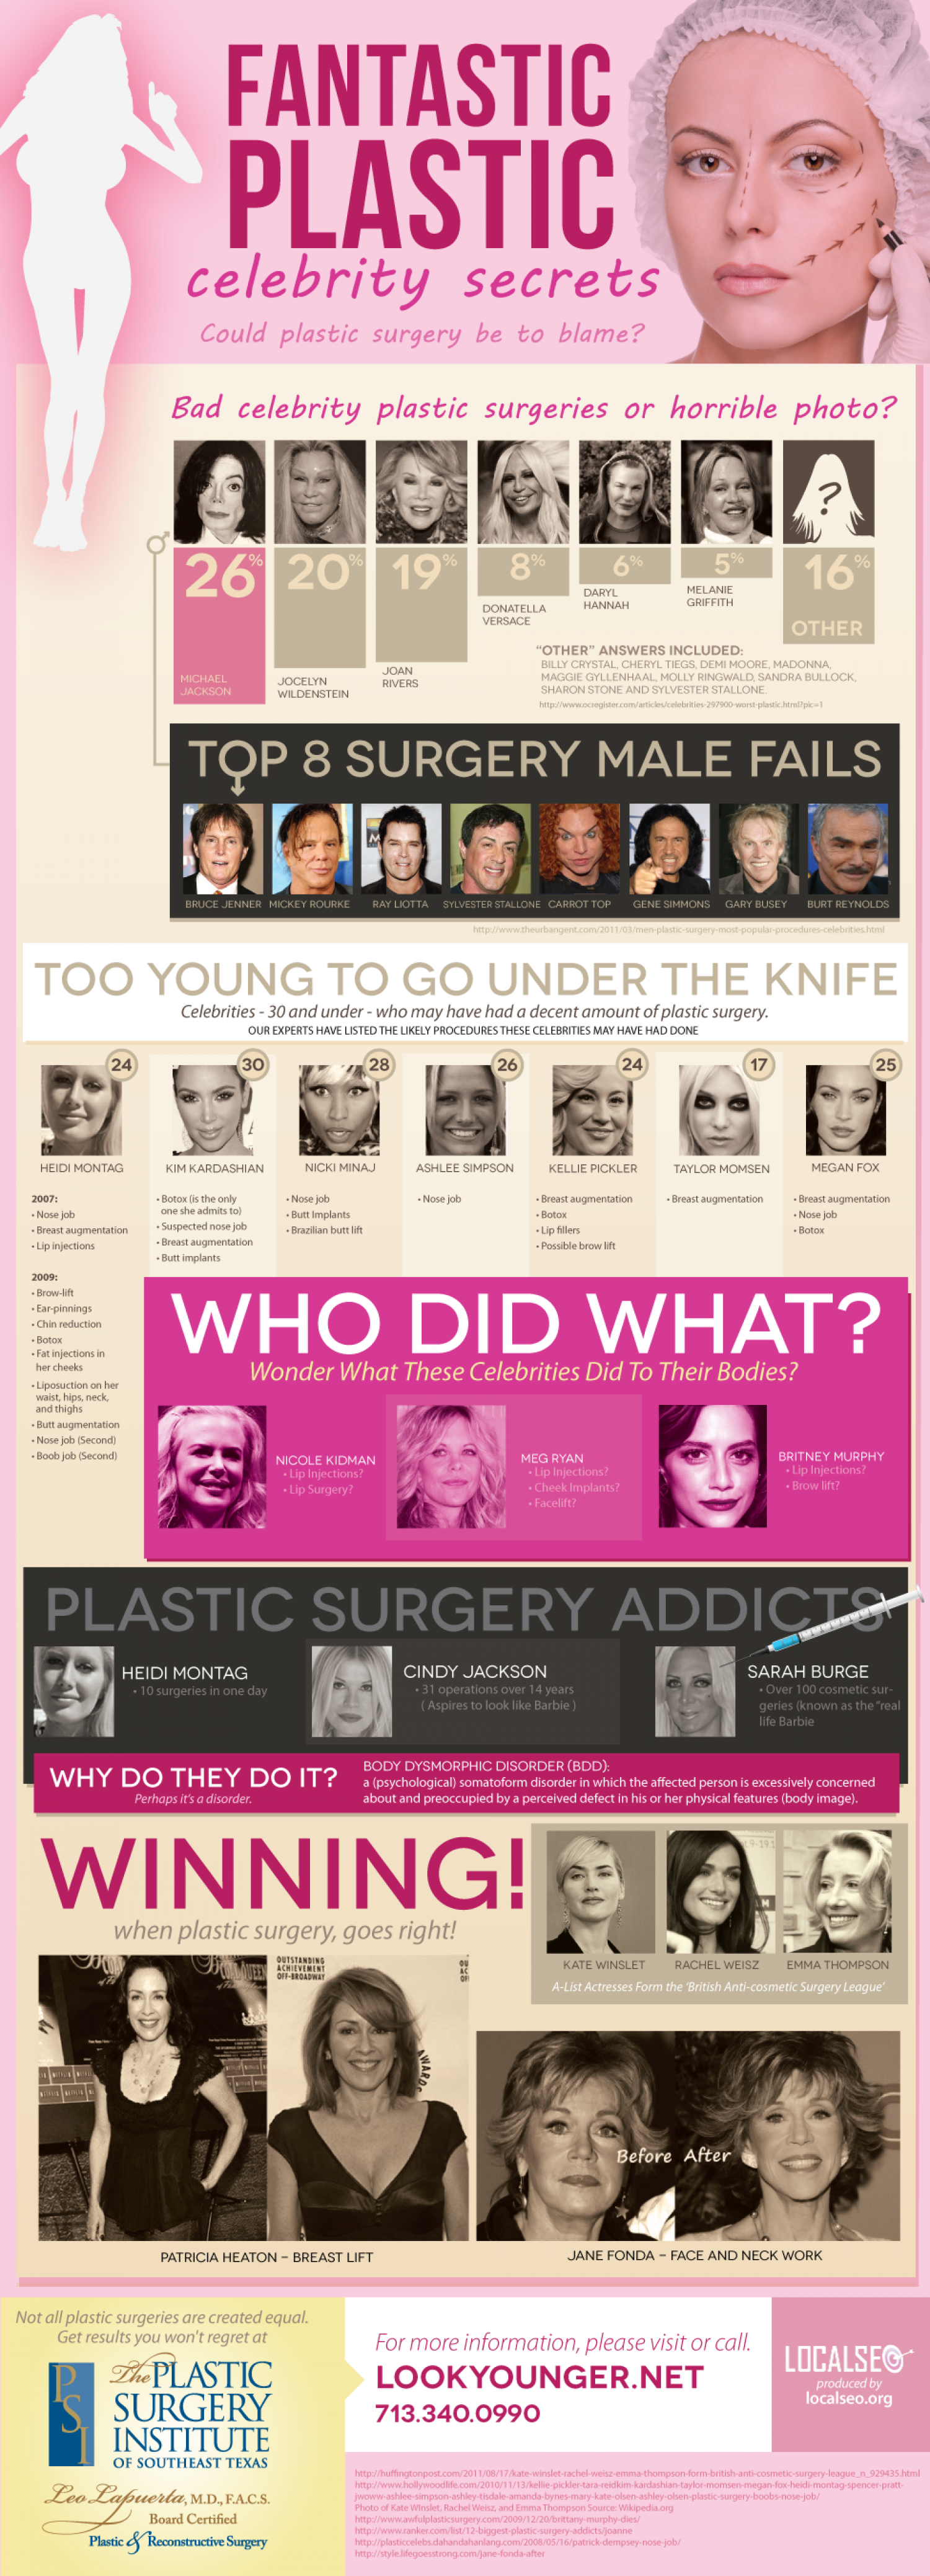 Celebrity Plastic Surgery Secrets Infographic